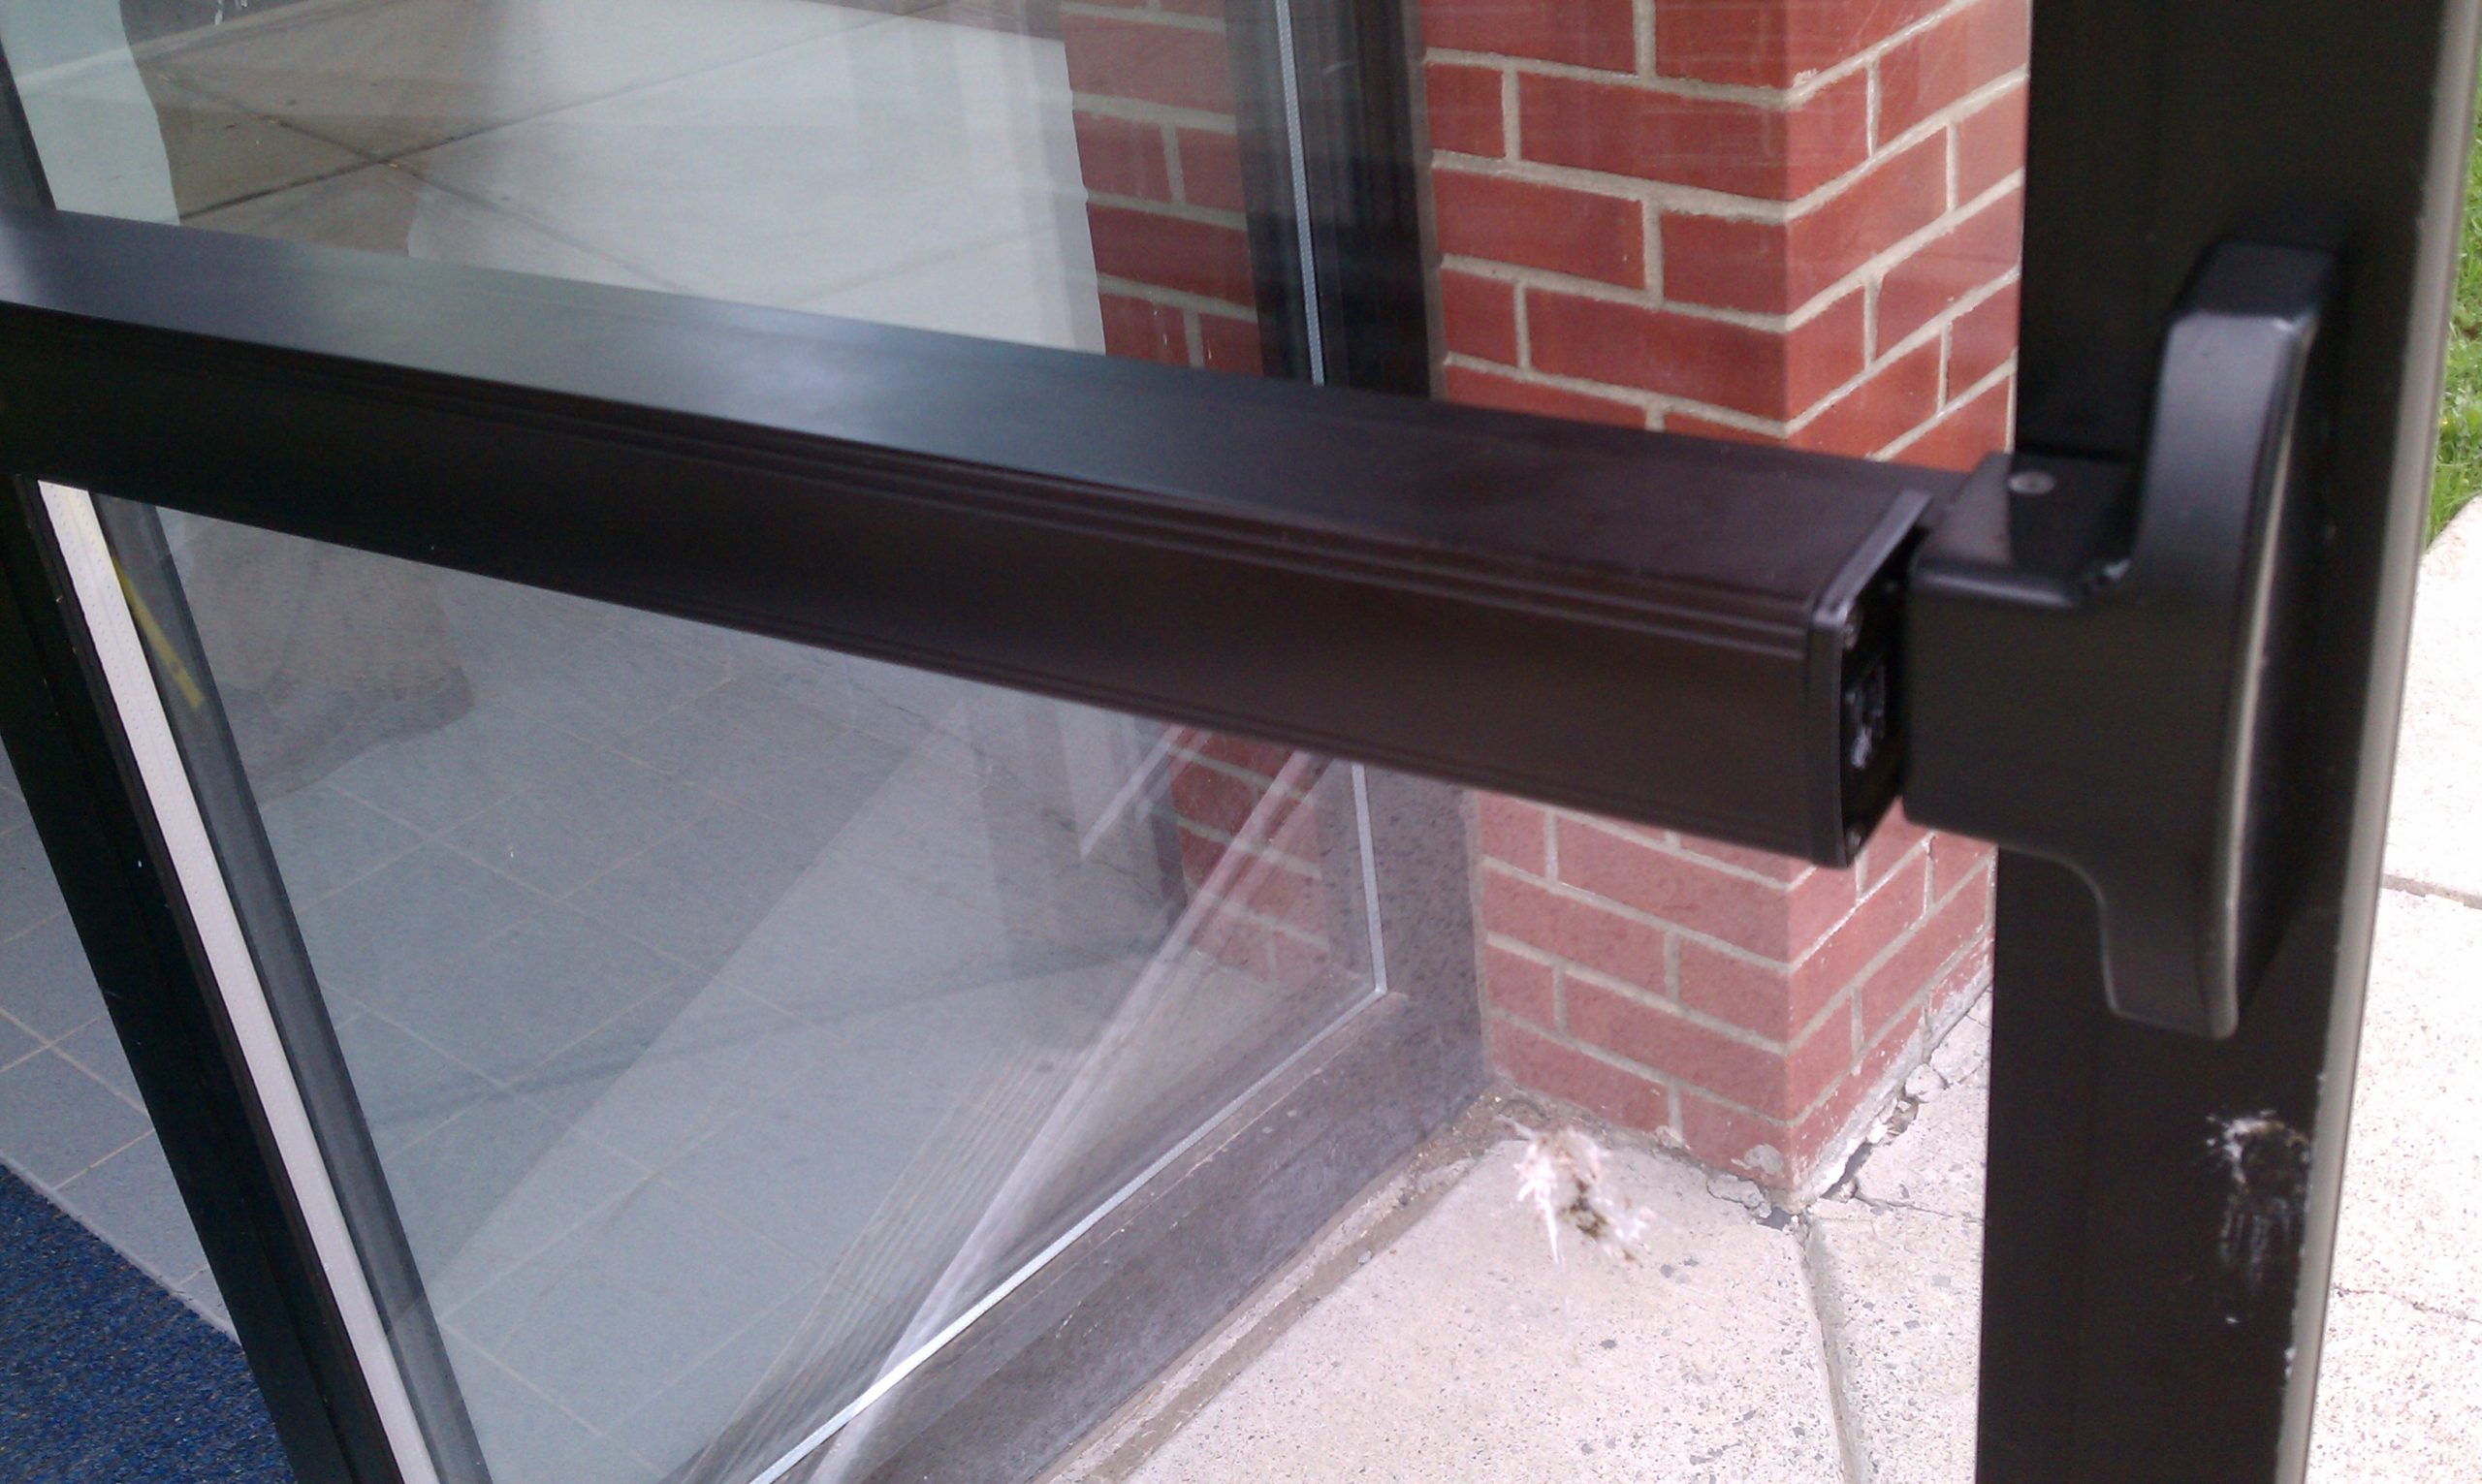 Panic bar on commercial glass exit door